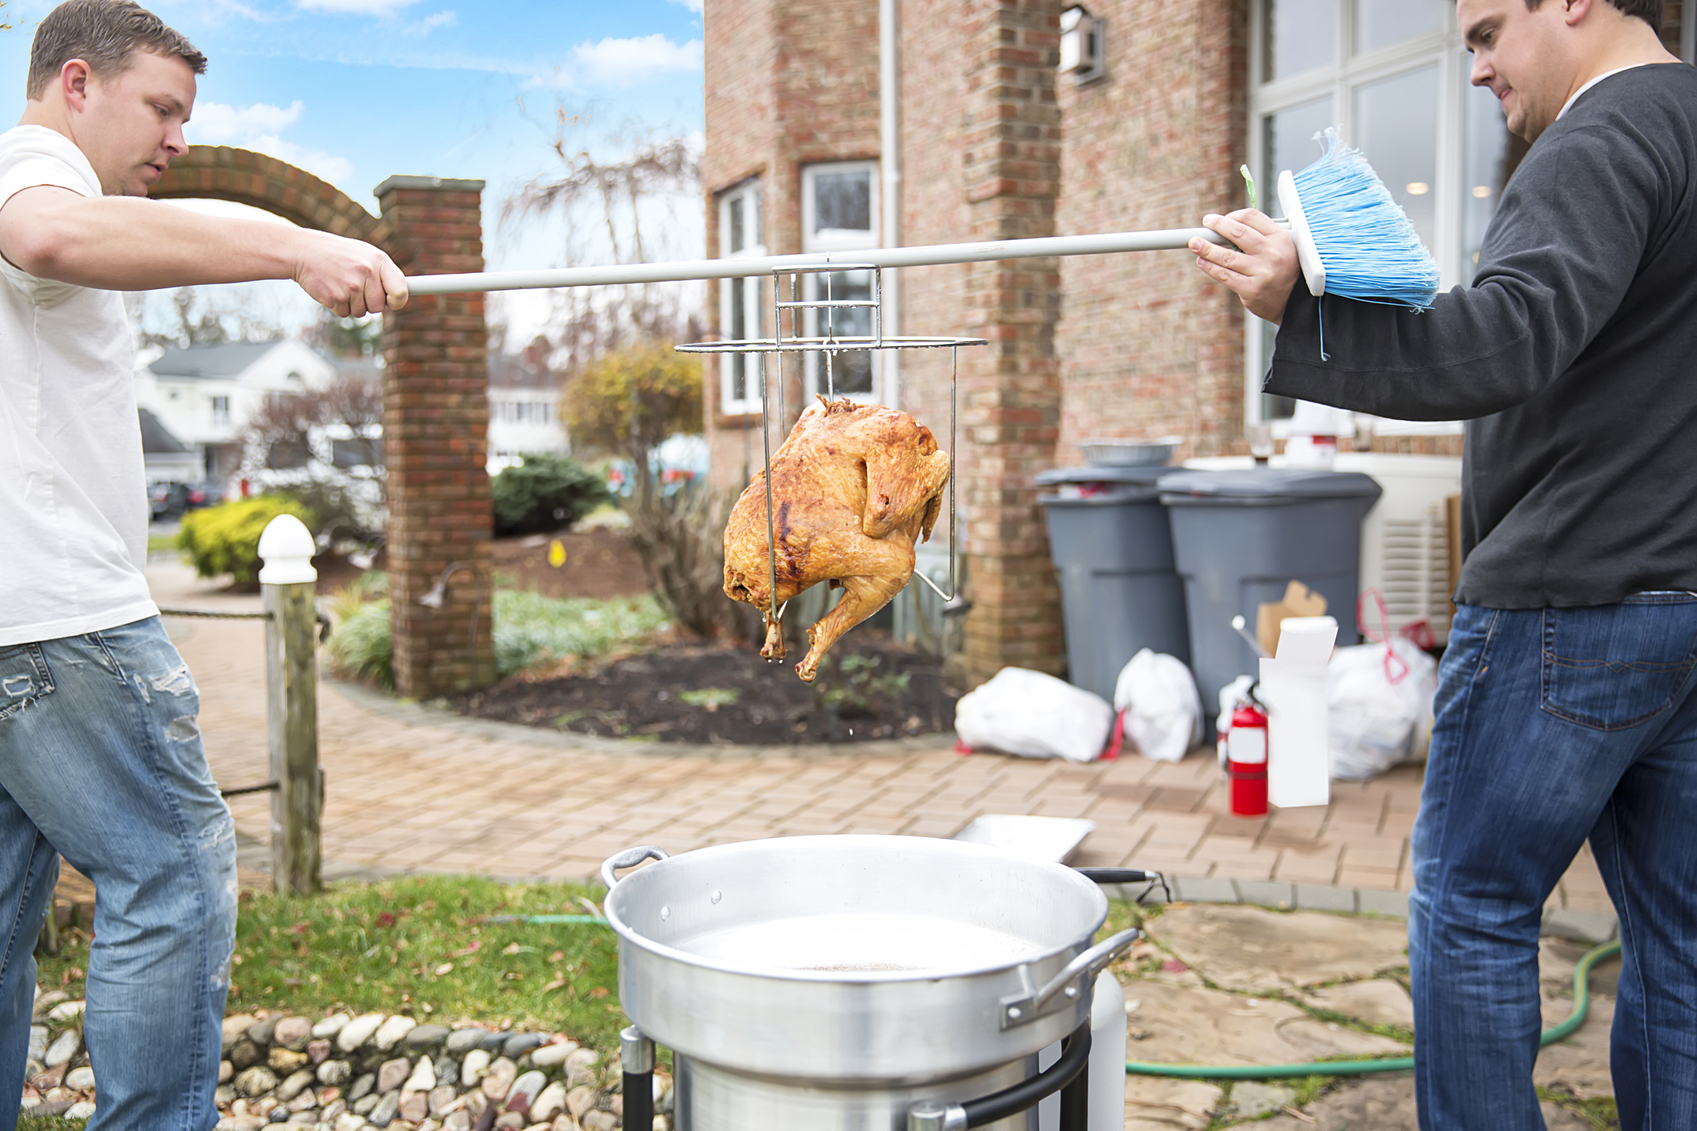 Two caucasian men are using a broom to carry a deep fried turkey they have just lifted out of the hot oil in a deep fryer into the house. The fryer is outside because it is too dangerous to have it indoors. Taken with a Canon 5D Mark 3. rm